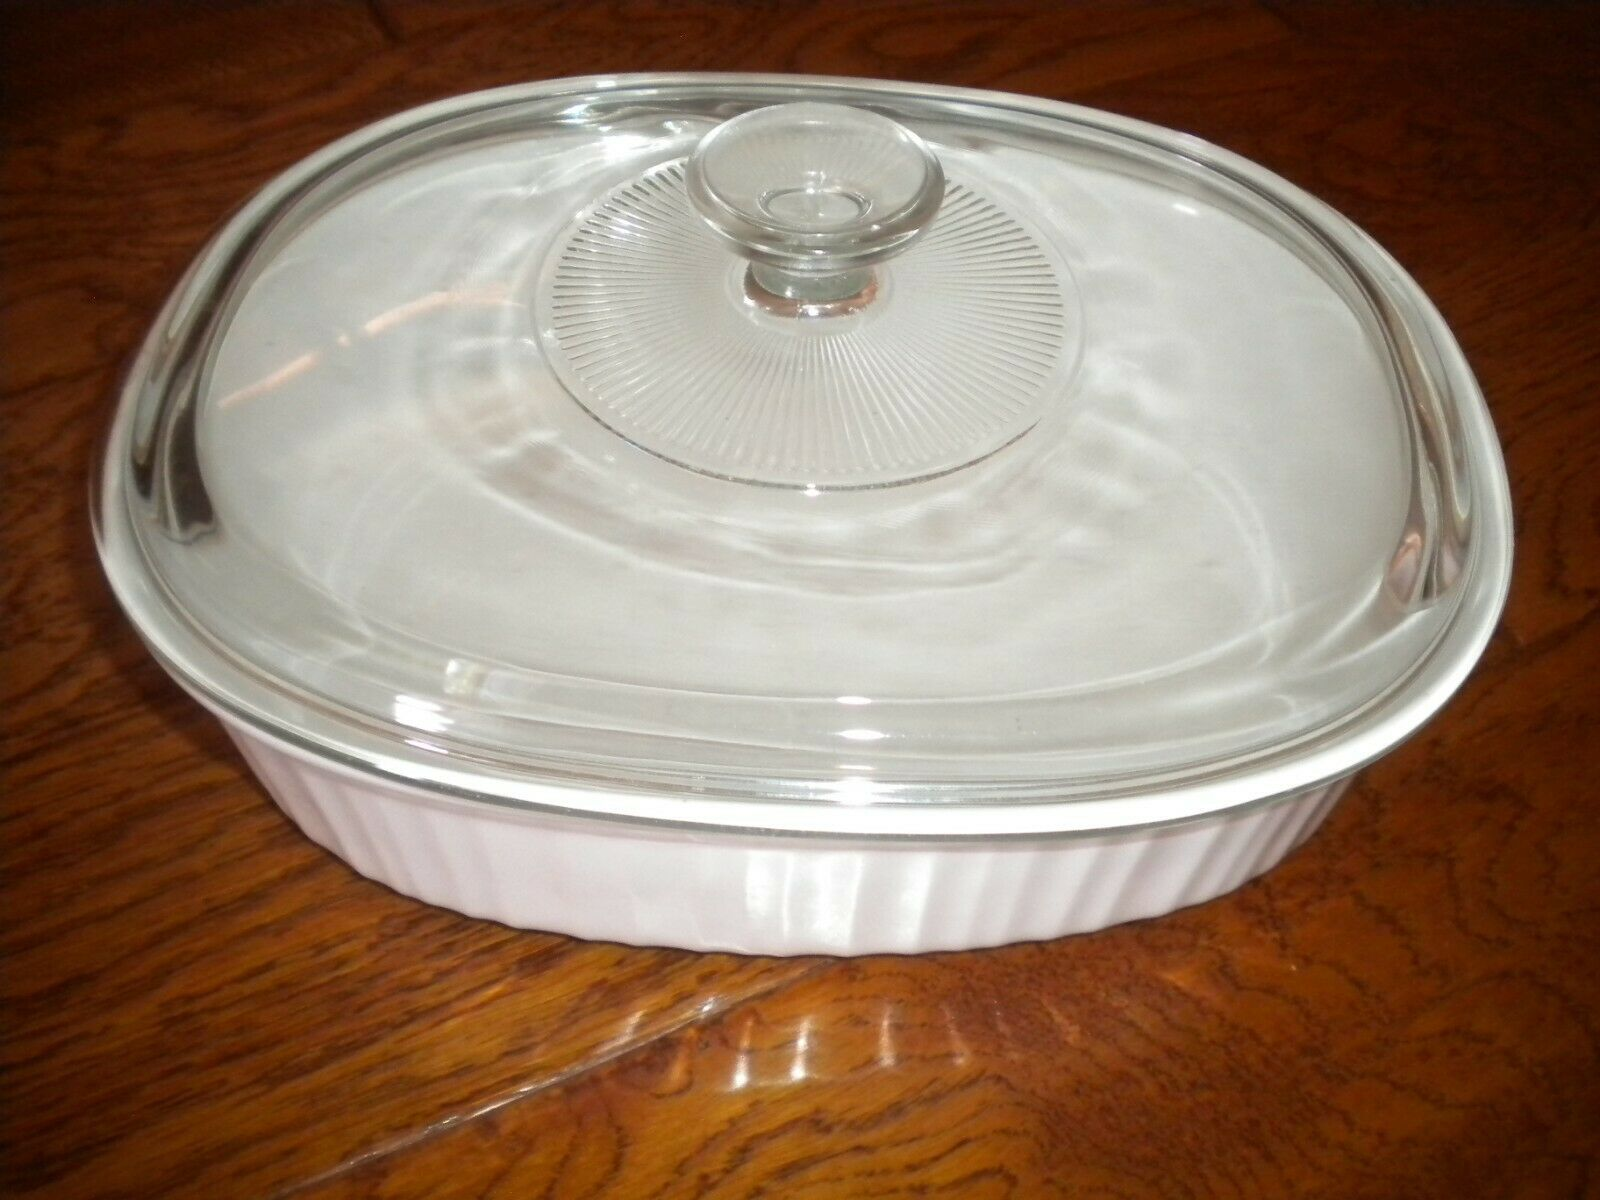 Corning Ware French White Stoneware 2 1/2qt Casserole Dish With Lid - $24.75